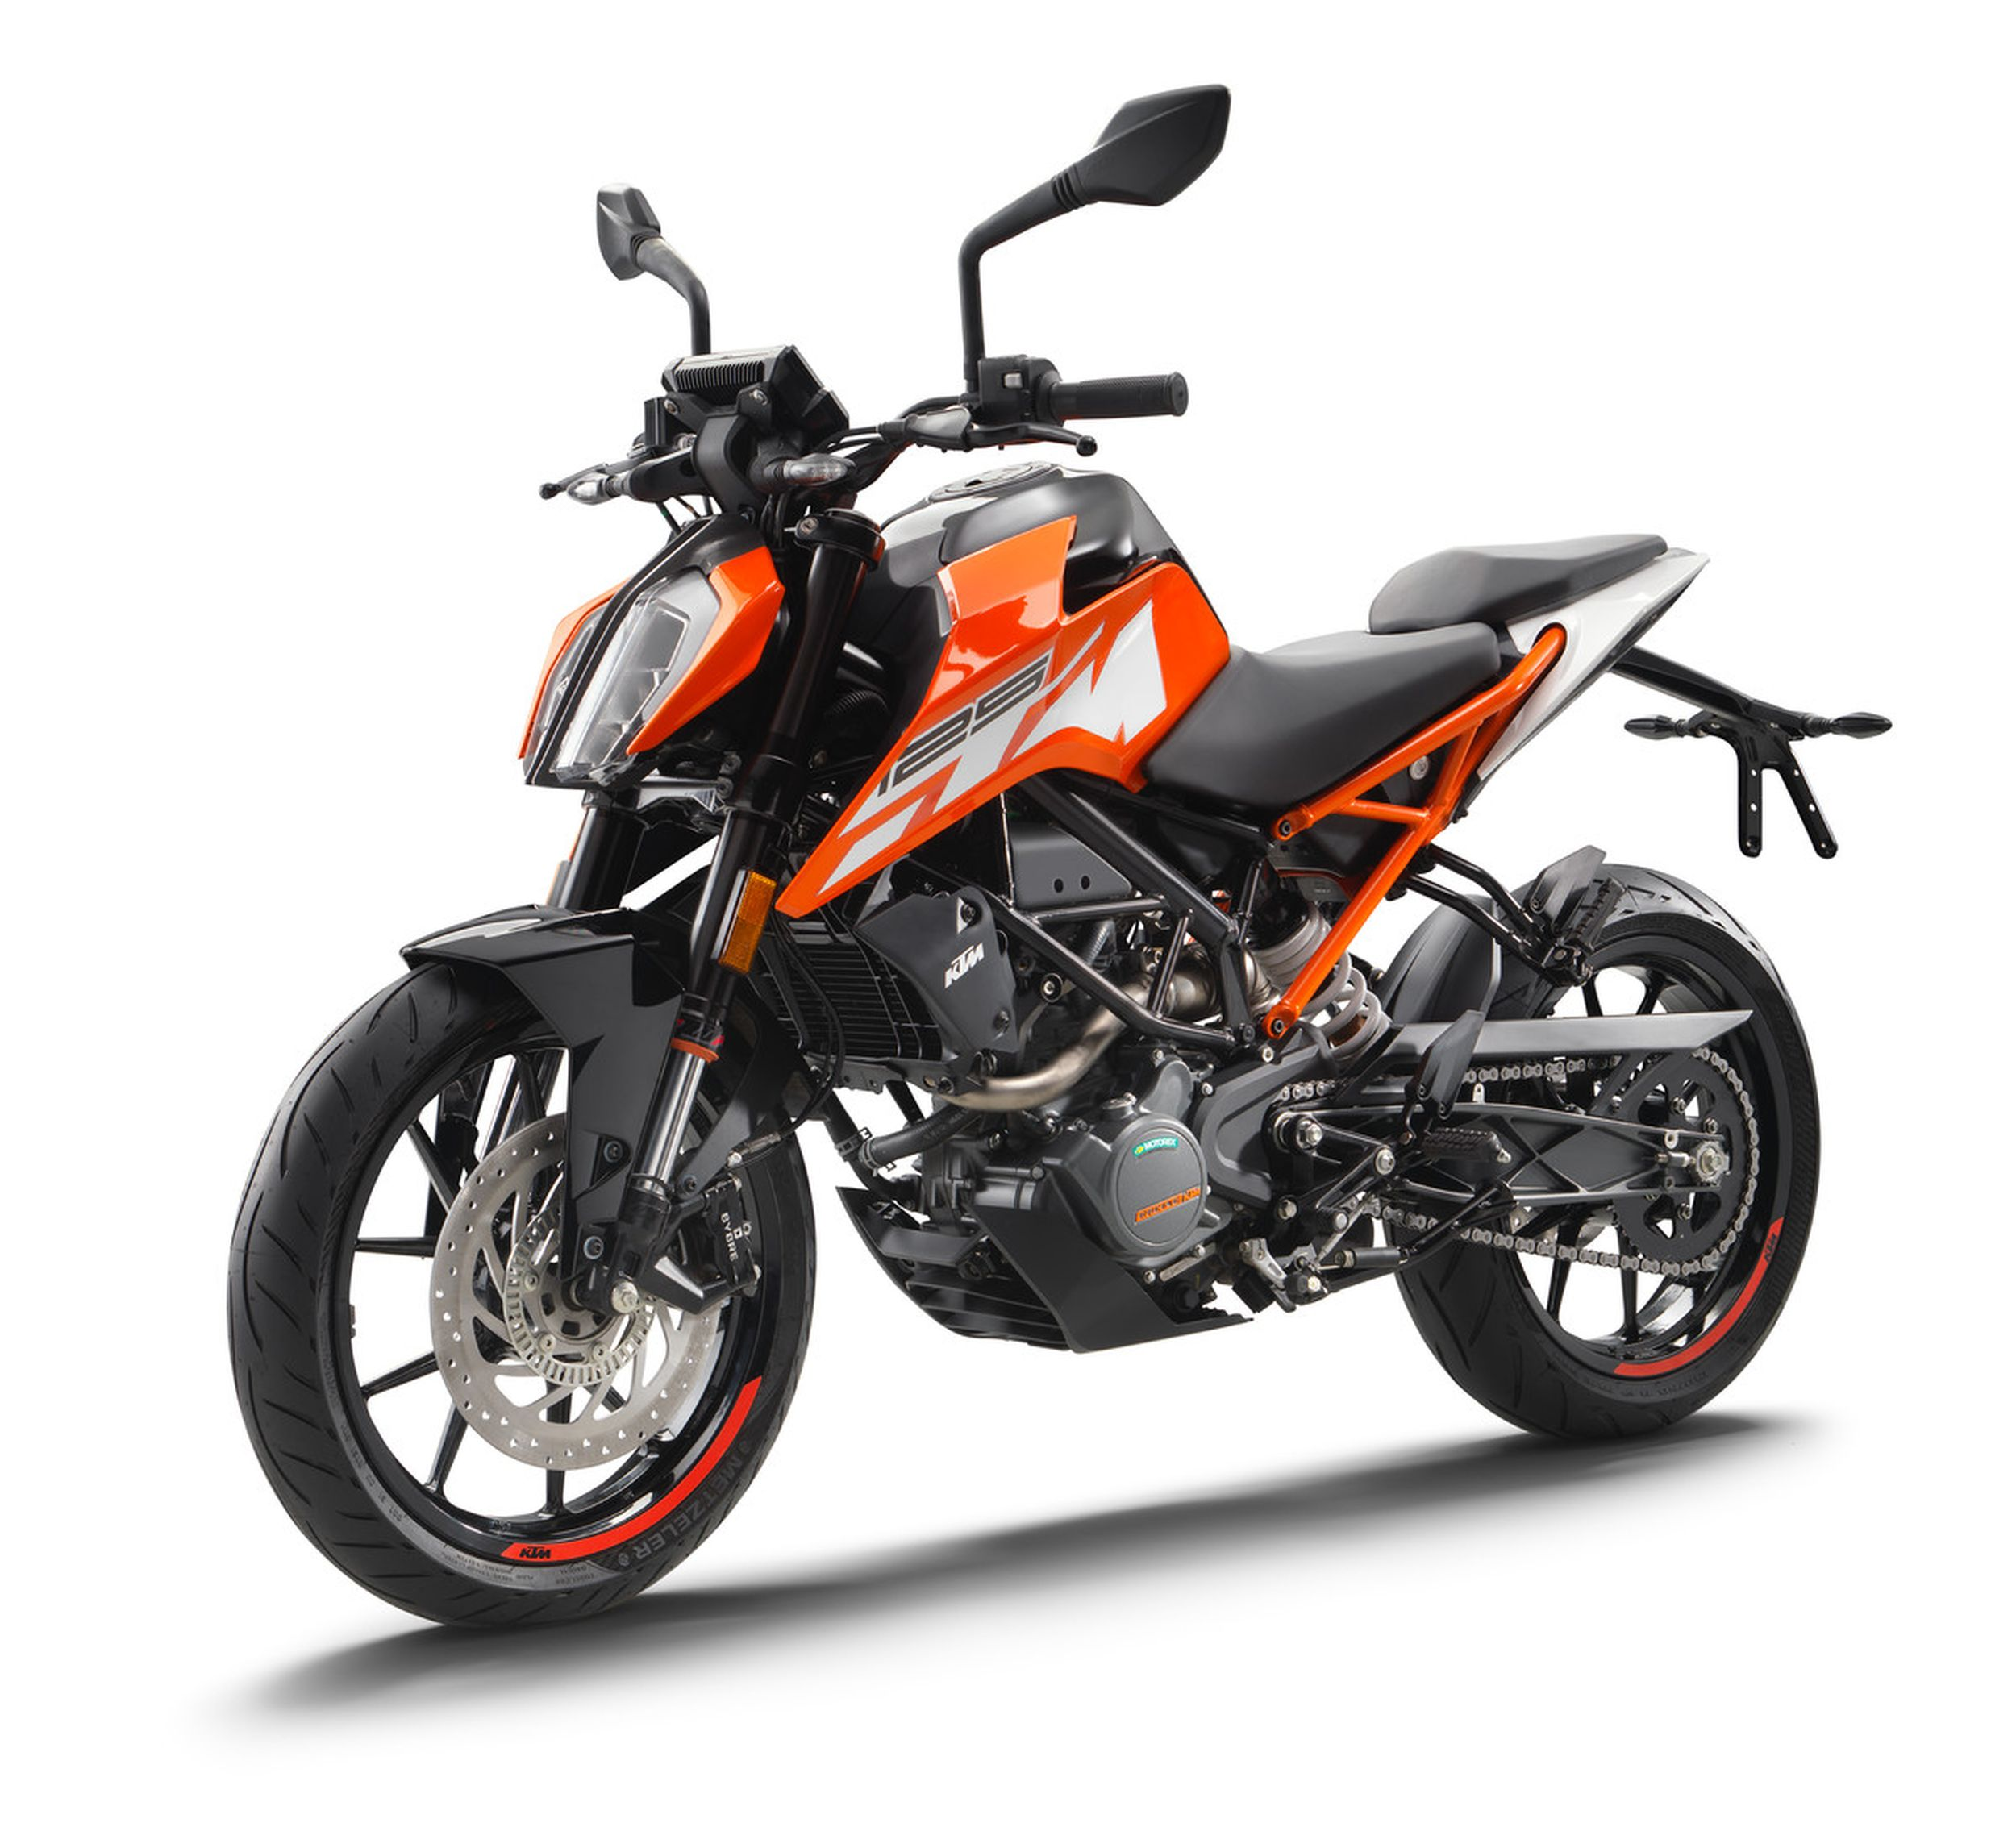 gebrauchte ktm 125 duke motorr der kaufen. Black Bedroom Furniture Sets. Home Design Ideas